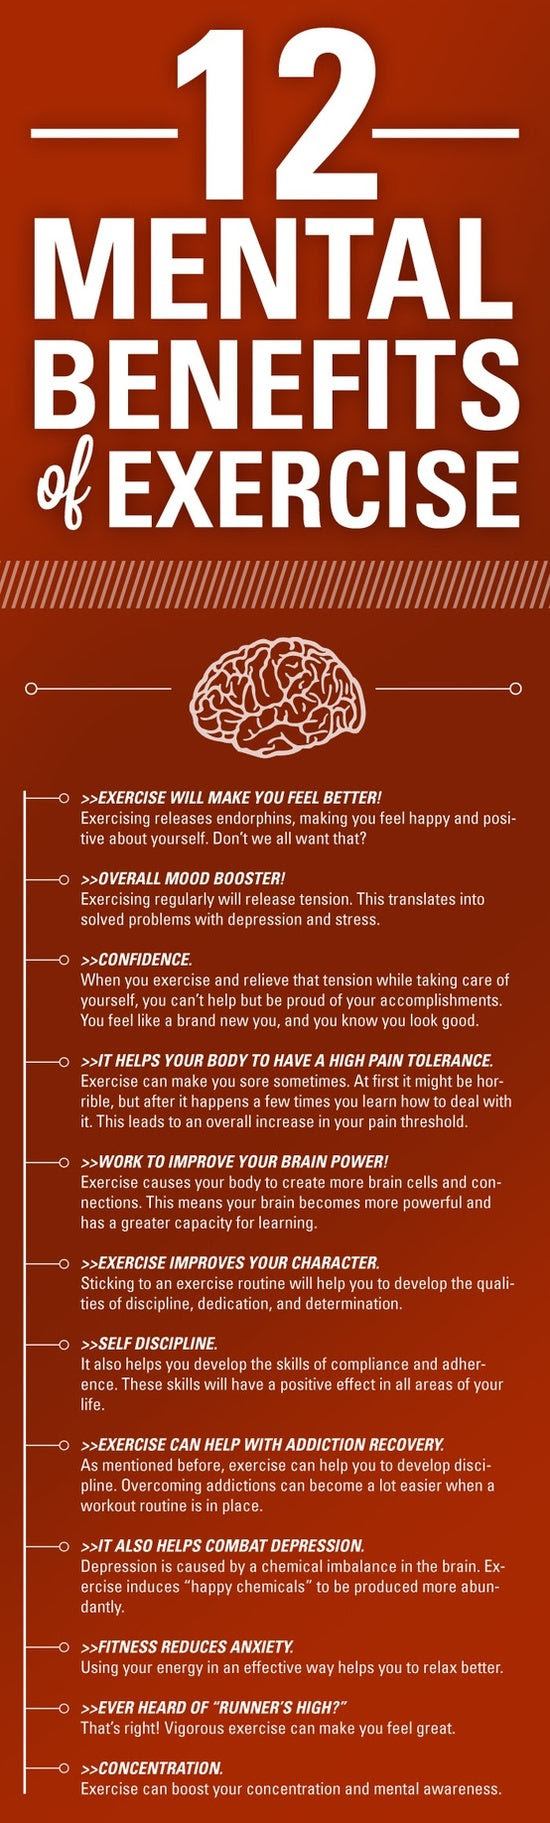 Exercise Is Good For Your Mental Health - Tribesports